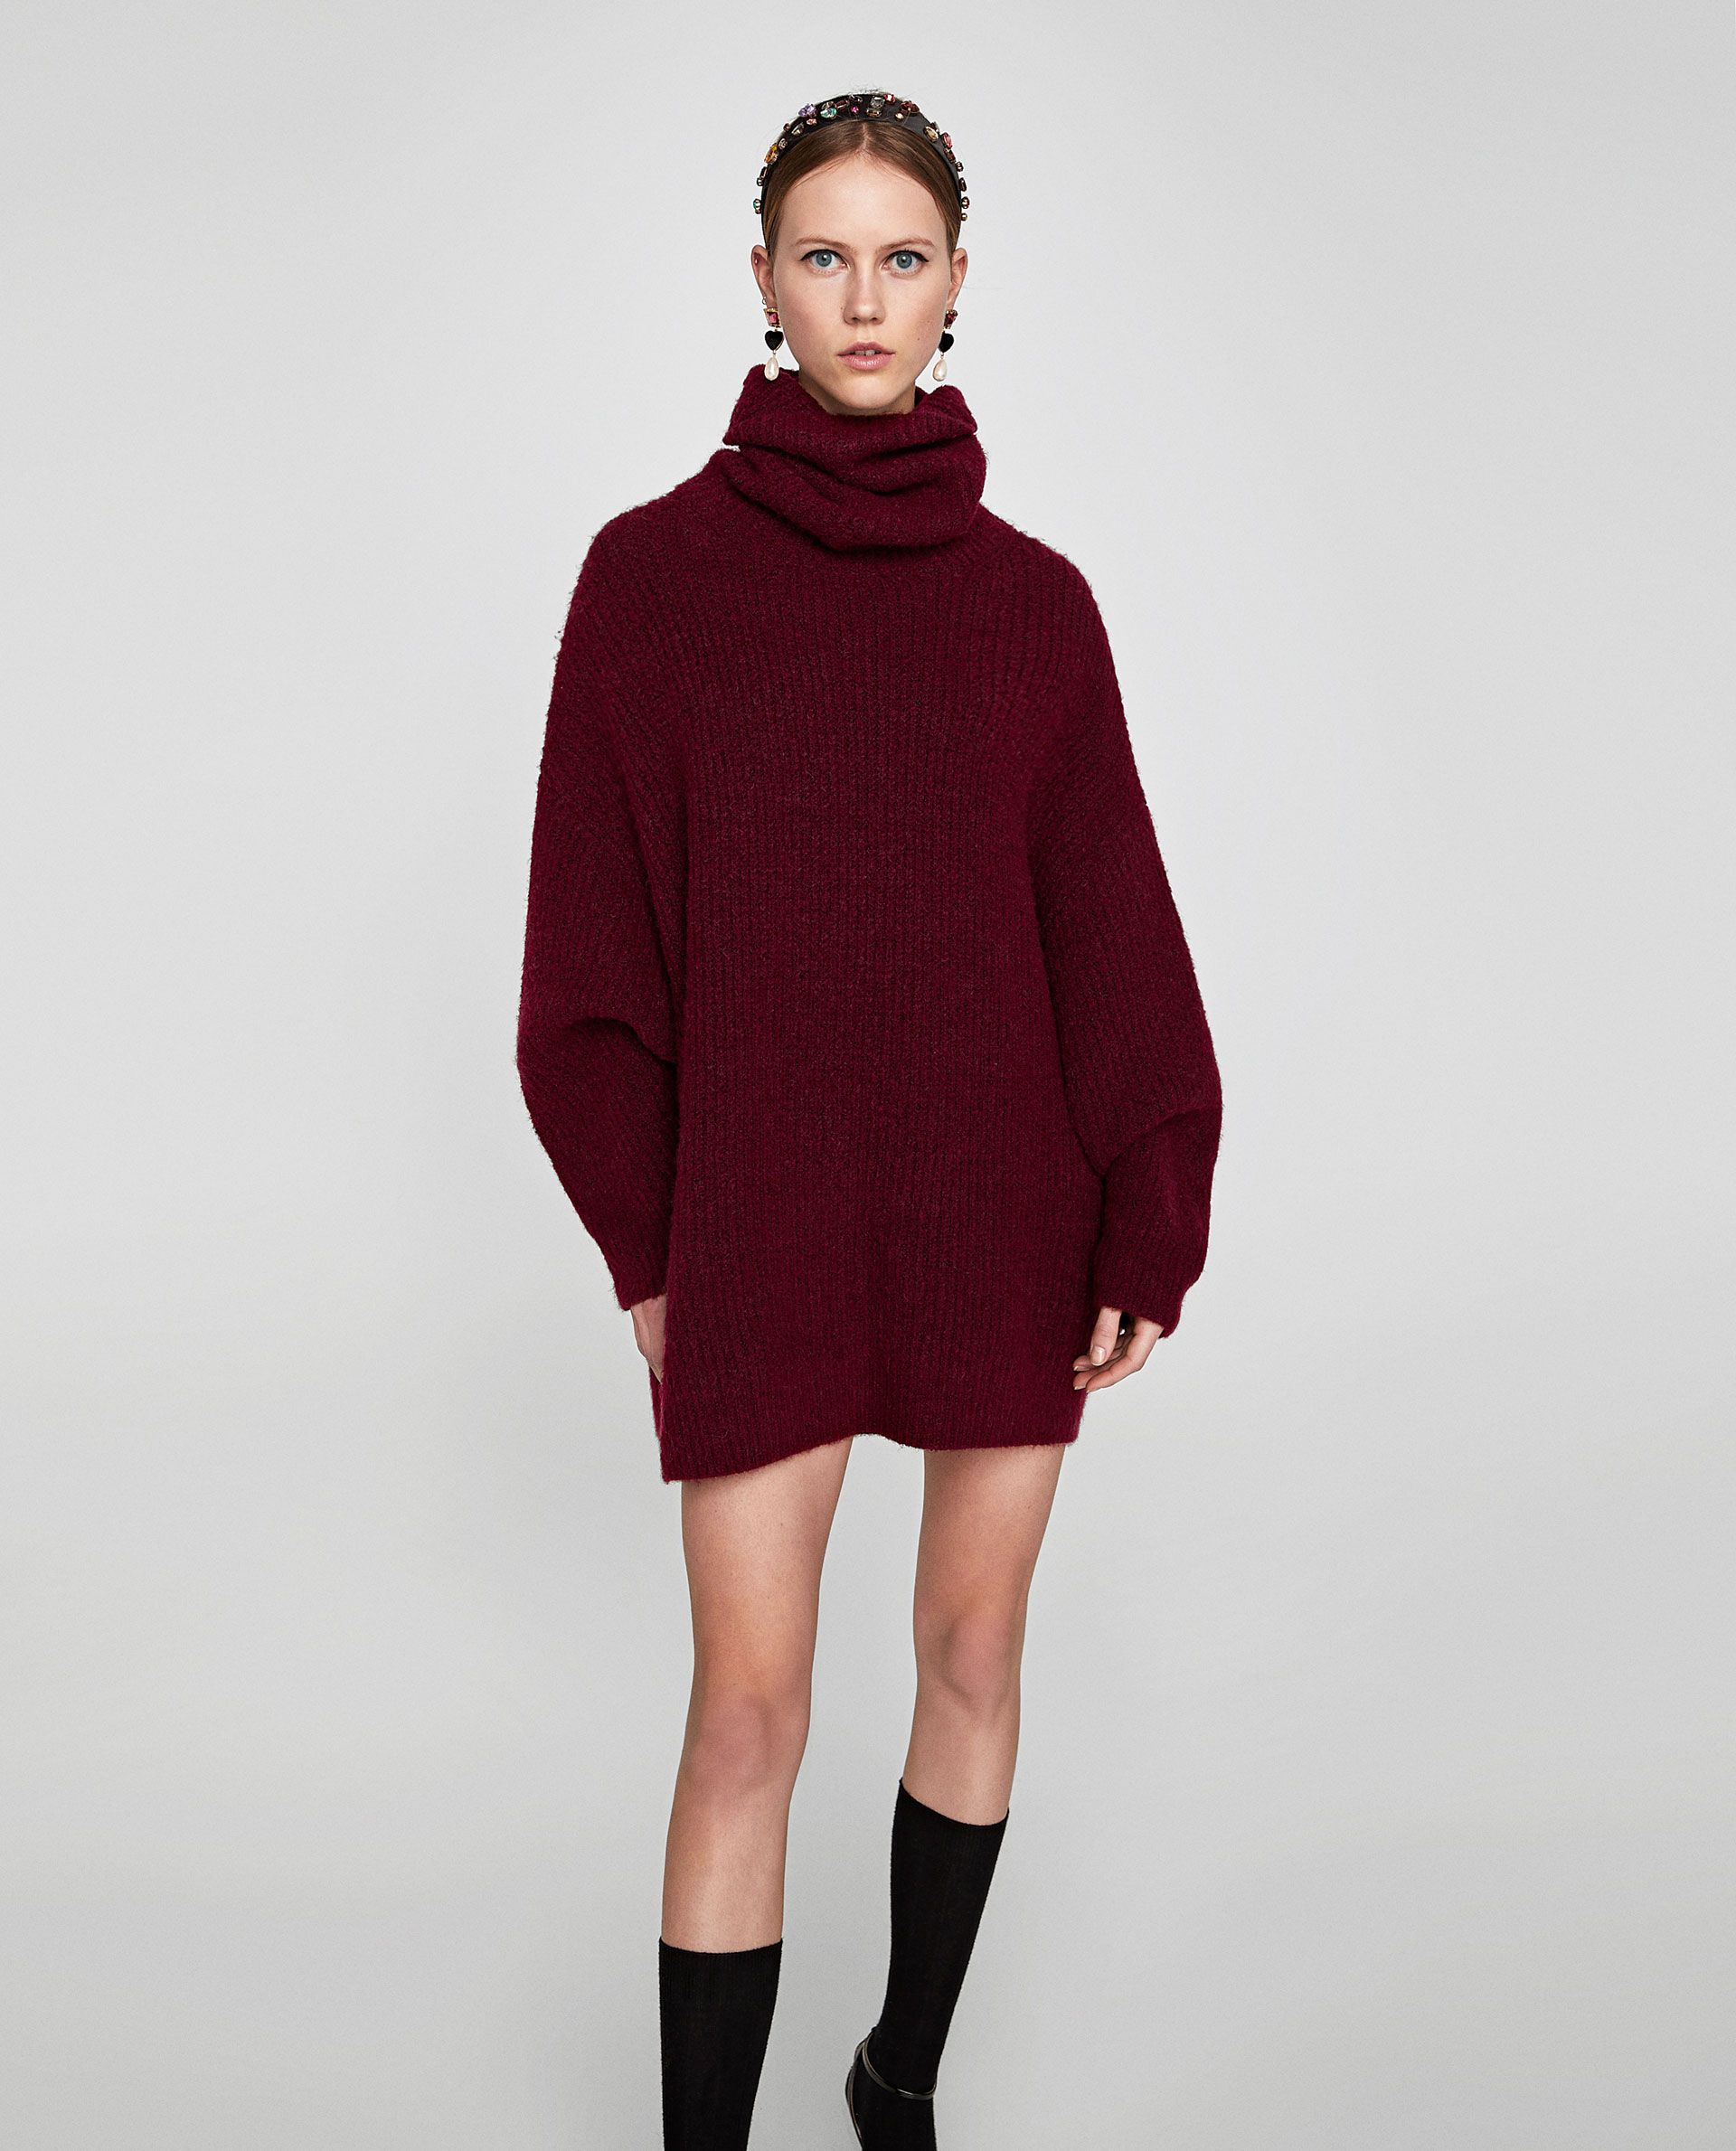 bda969a6 OVERSIZED ROLL NECK SWEATER - Available in more colours   in the ...